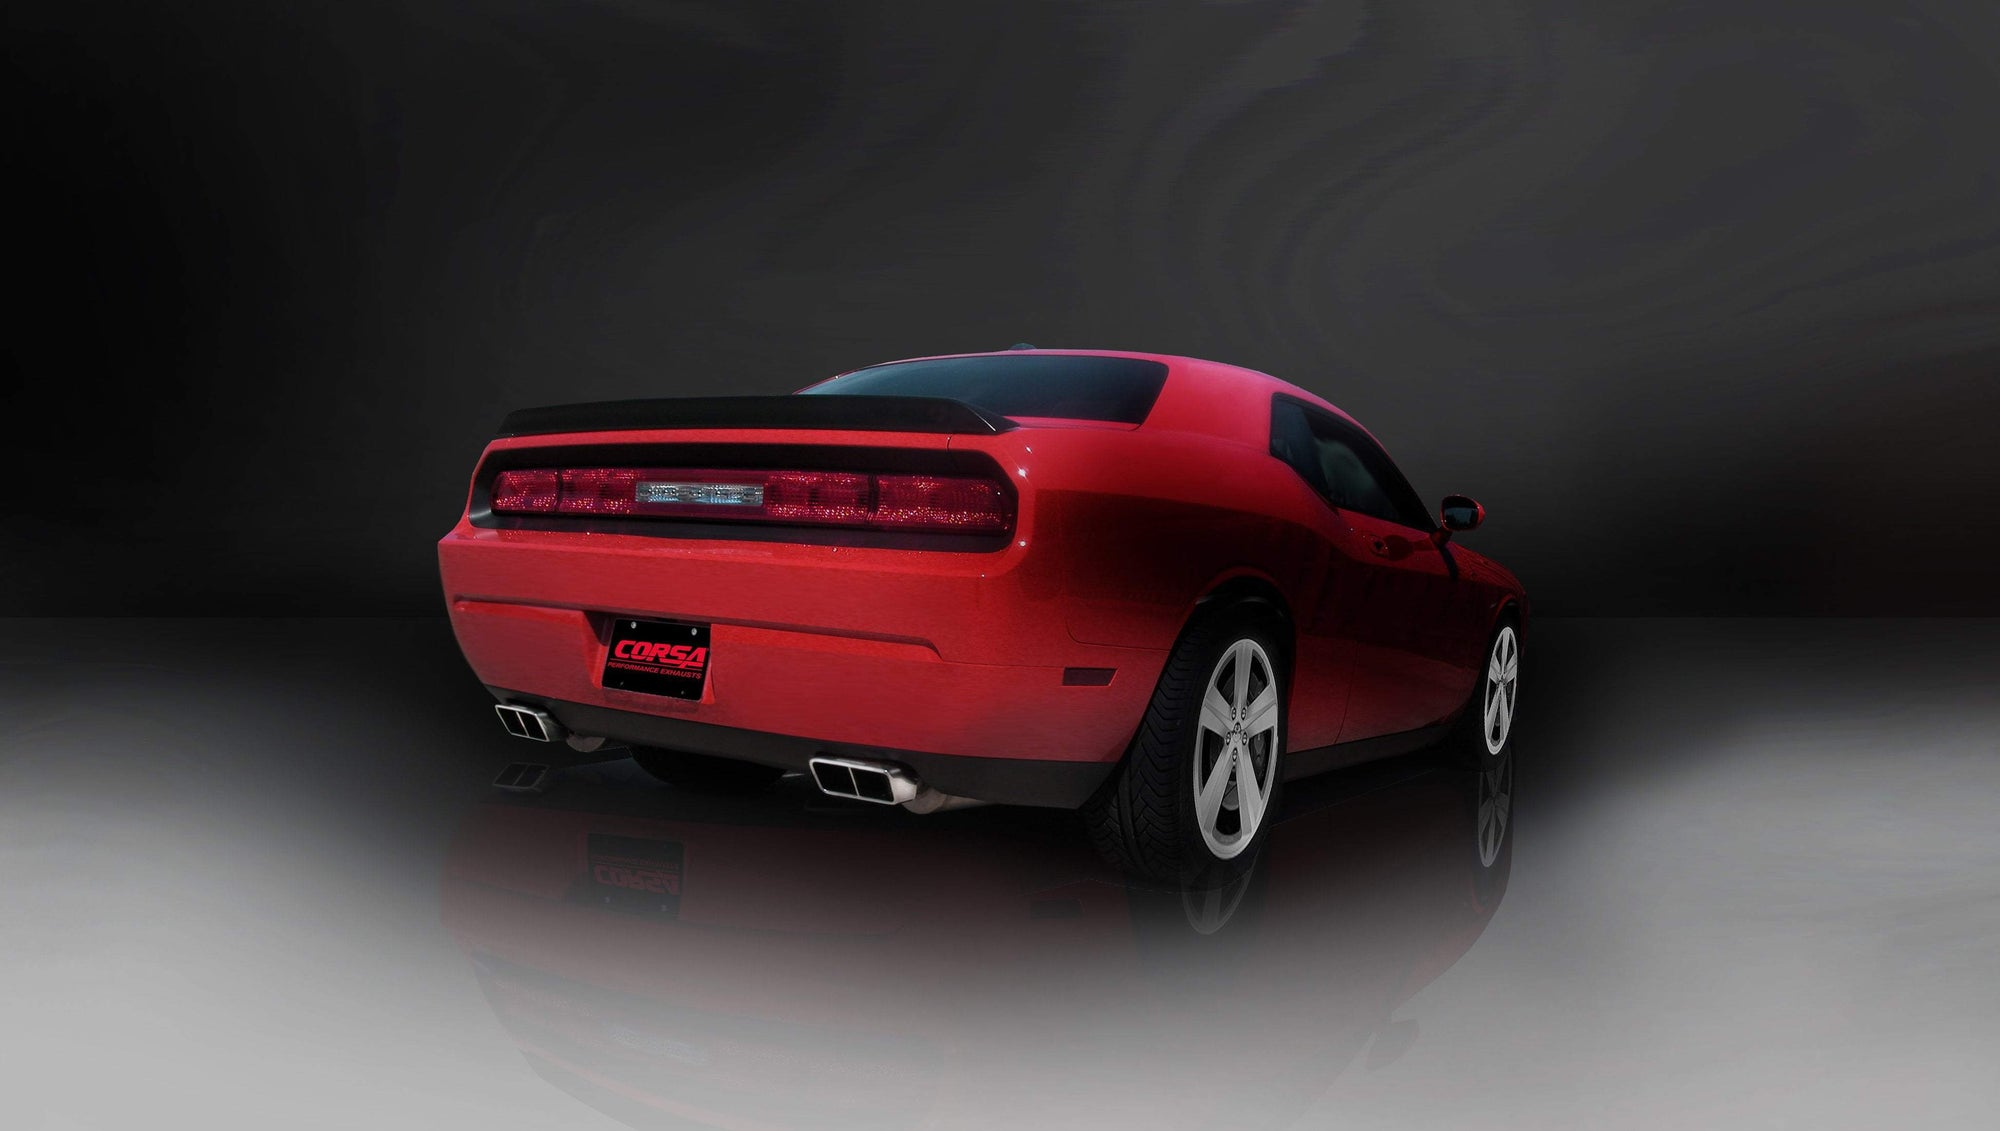 "CORSA PERFORMANCE Cat-Back Exhaust Polished / Xtreme / Dual Rear - GTX 2009-2010 Dodge Challenger R/T, 5.7L V8, 2.5"" Dual Rear Exit Cat-Back Exhaust System with GTX Tips (14437) Xtreme Sound Level"